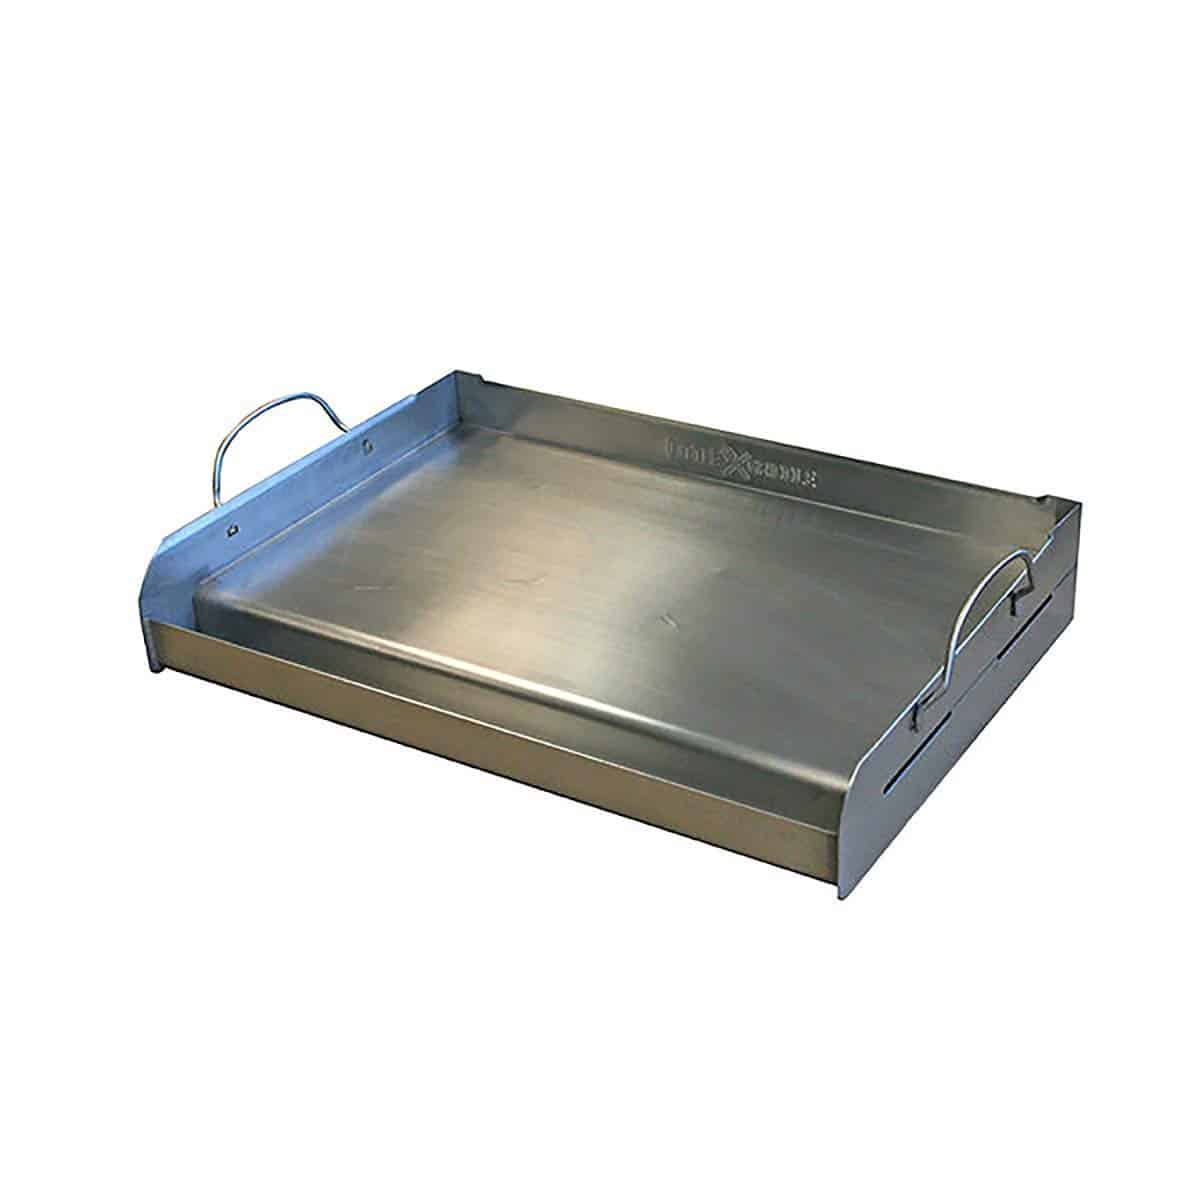 Little griddle GQ230 outdoor teppanyaki grill plate